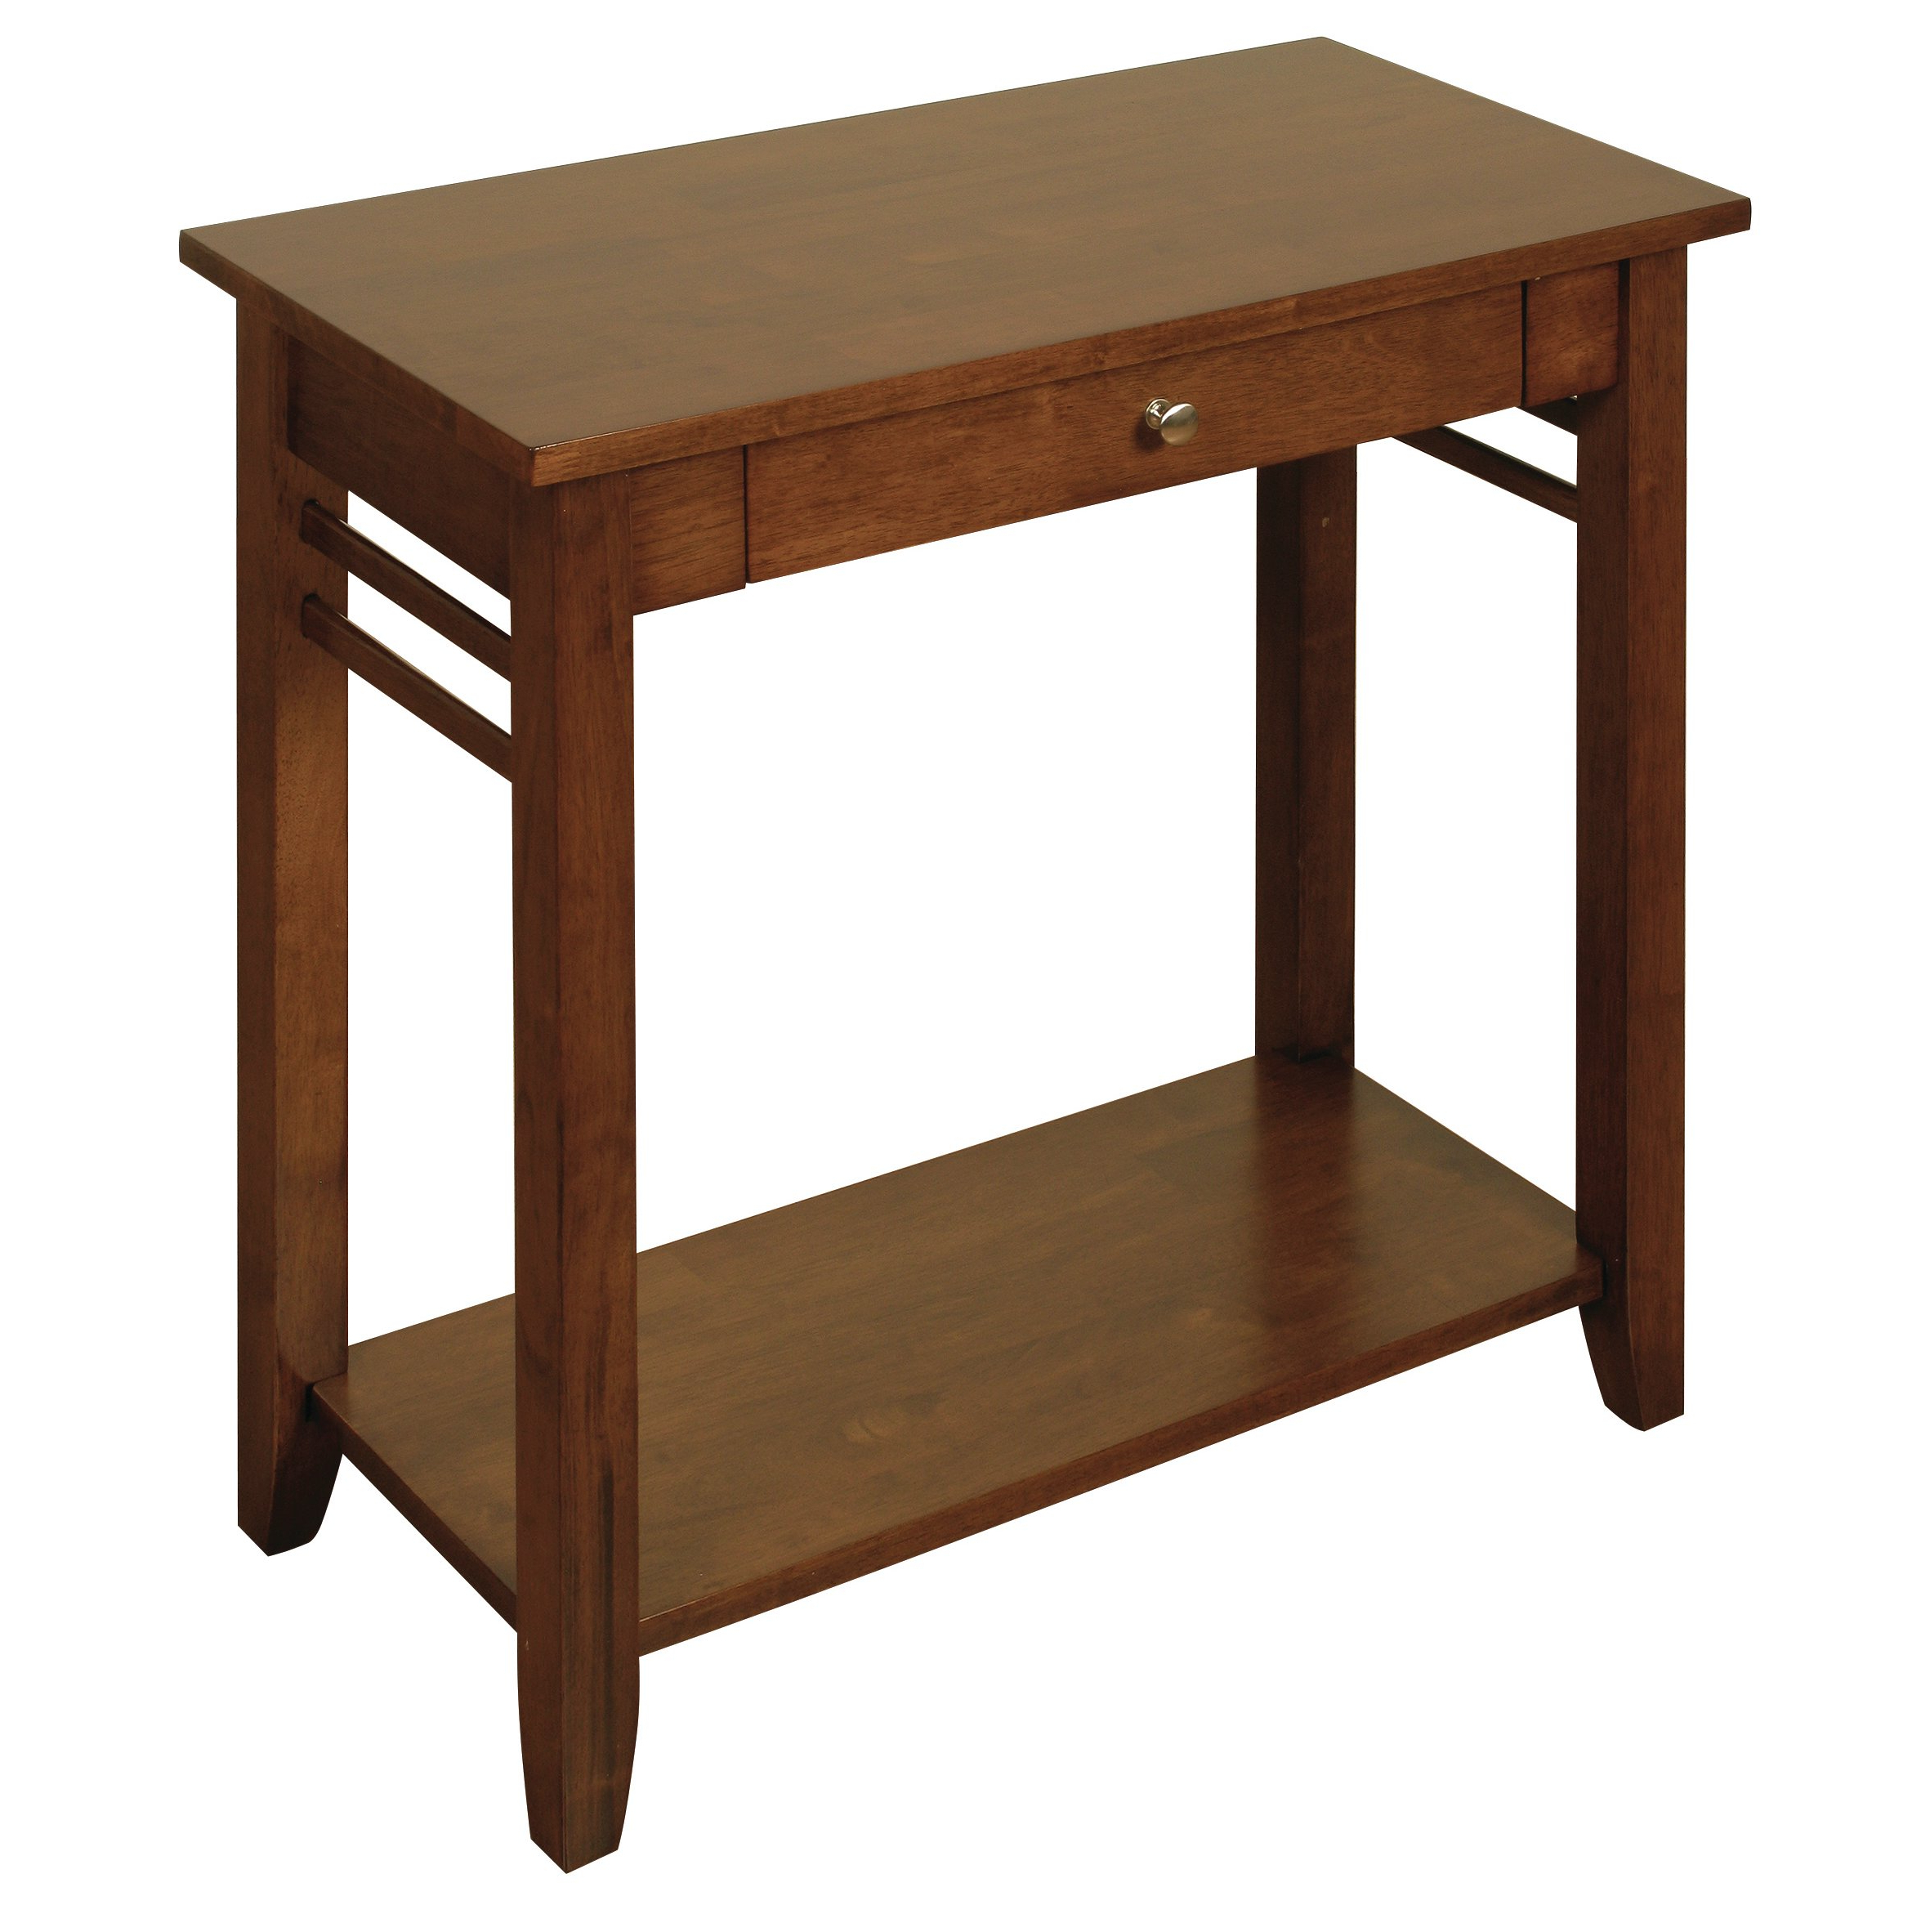 Most Recent Echelon Console Tables For Console Tables & Hallway Tables You'll Love (View 11 of 20)